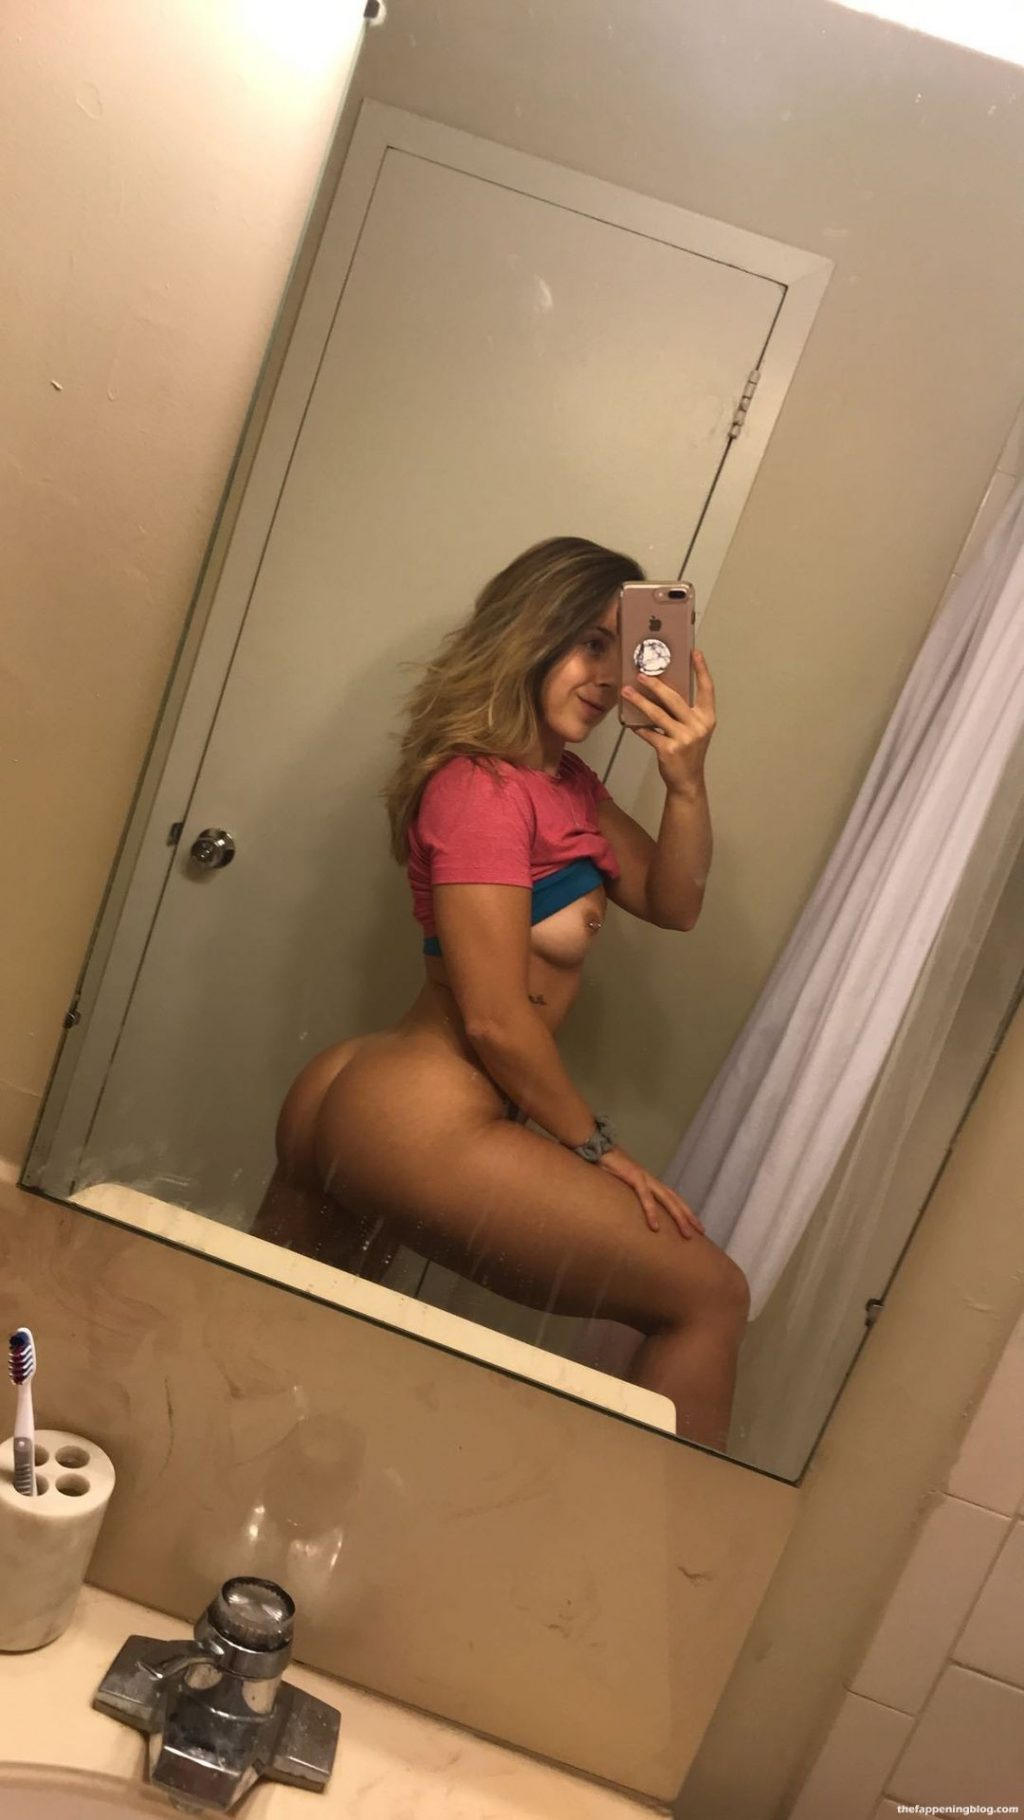 Katrina Wright Nude & Sexy Leaked The Fappening (61 Photos + All-in-One Video)